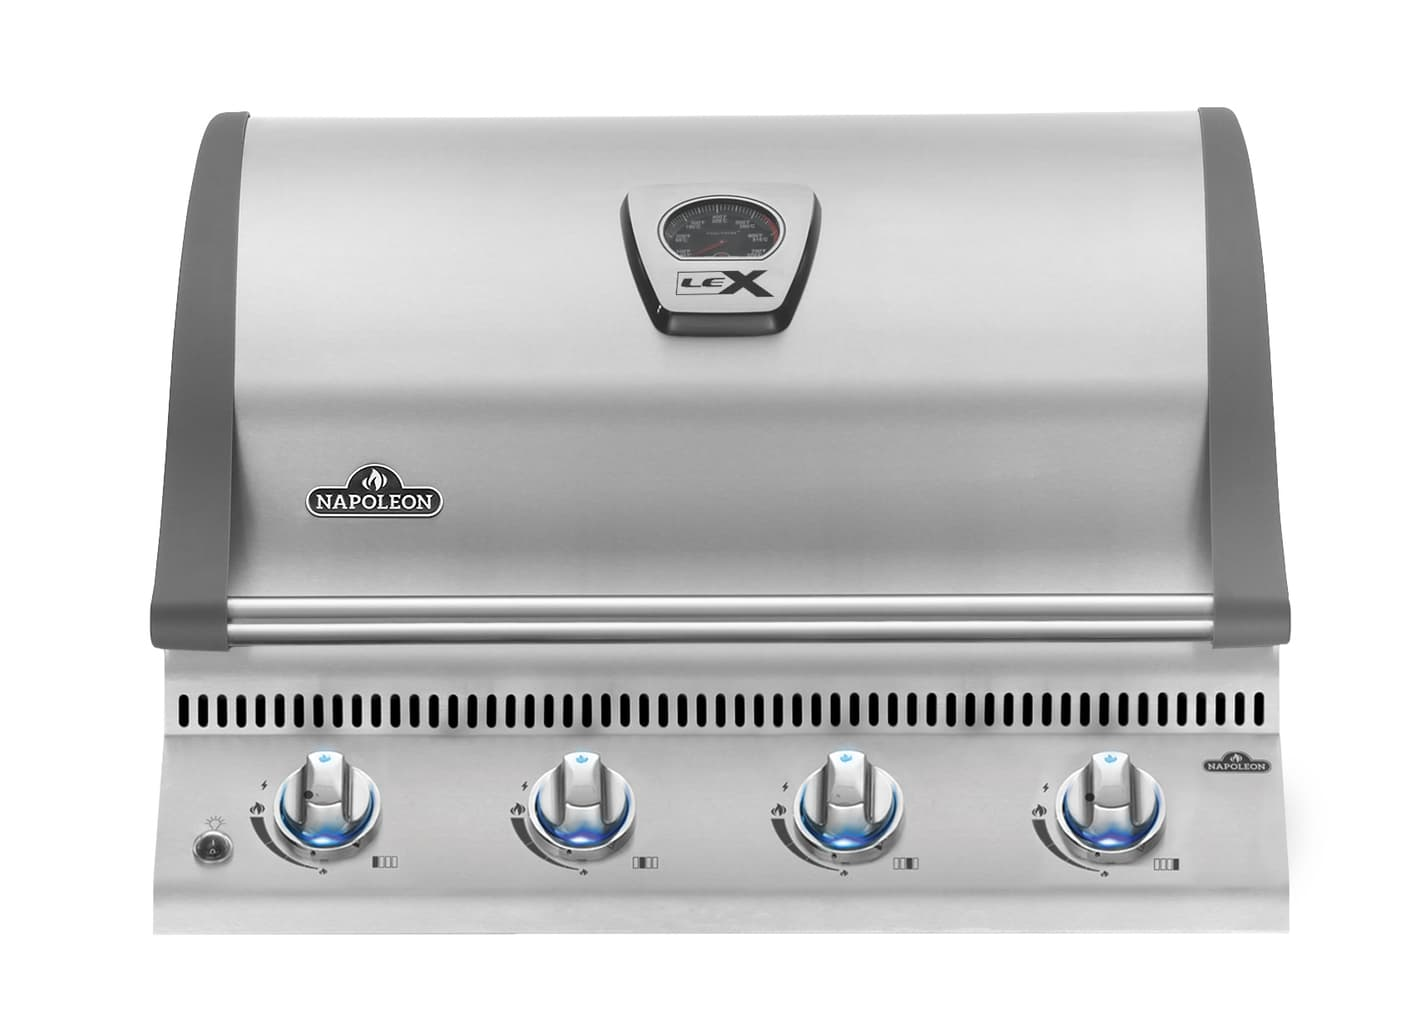 Napoleon Built-in LEX 485 - Stainless Steel - Propane